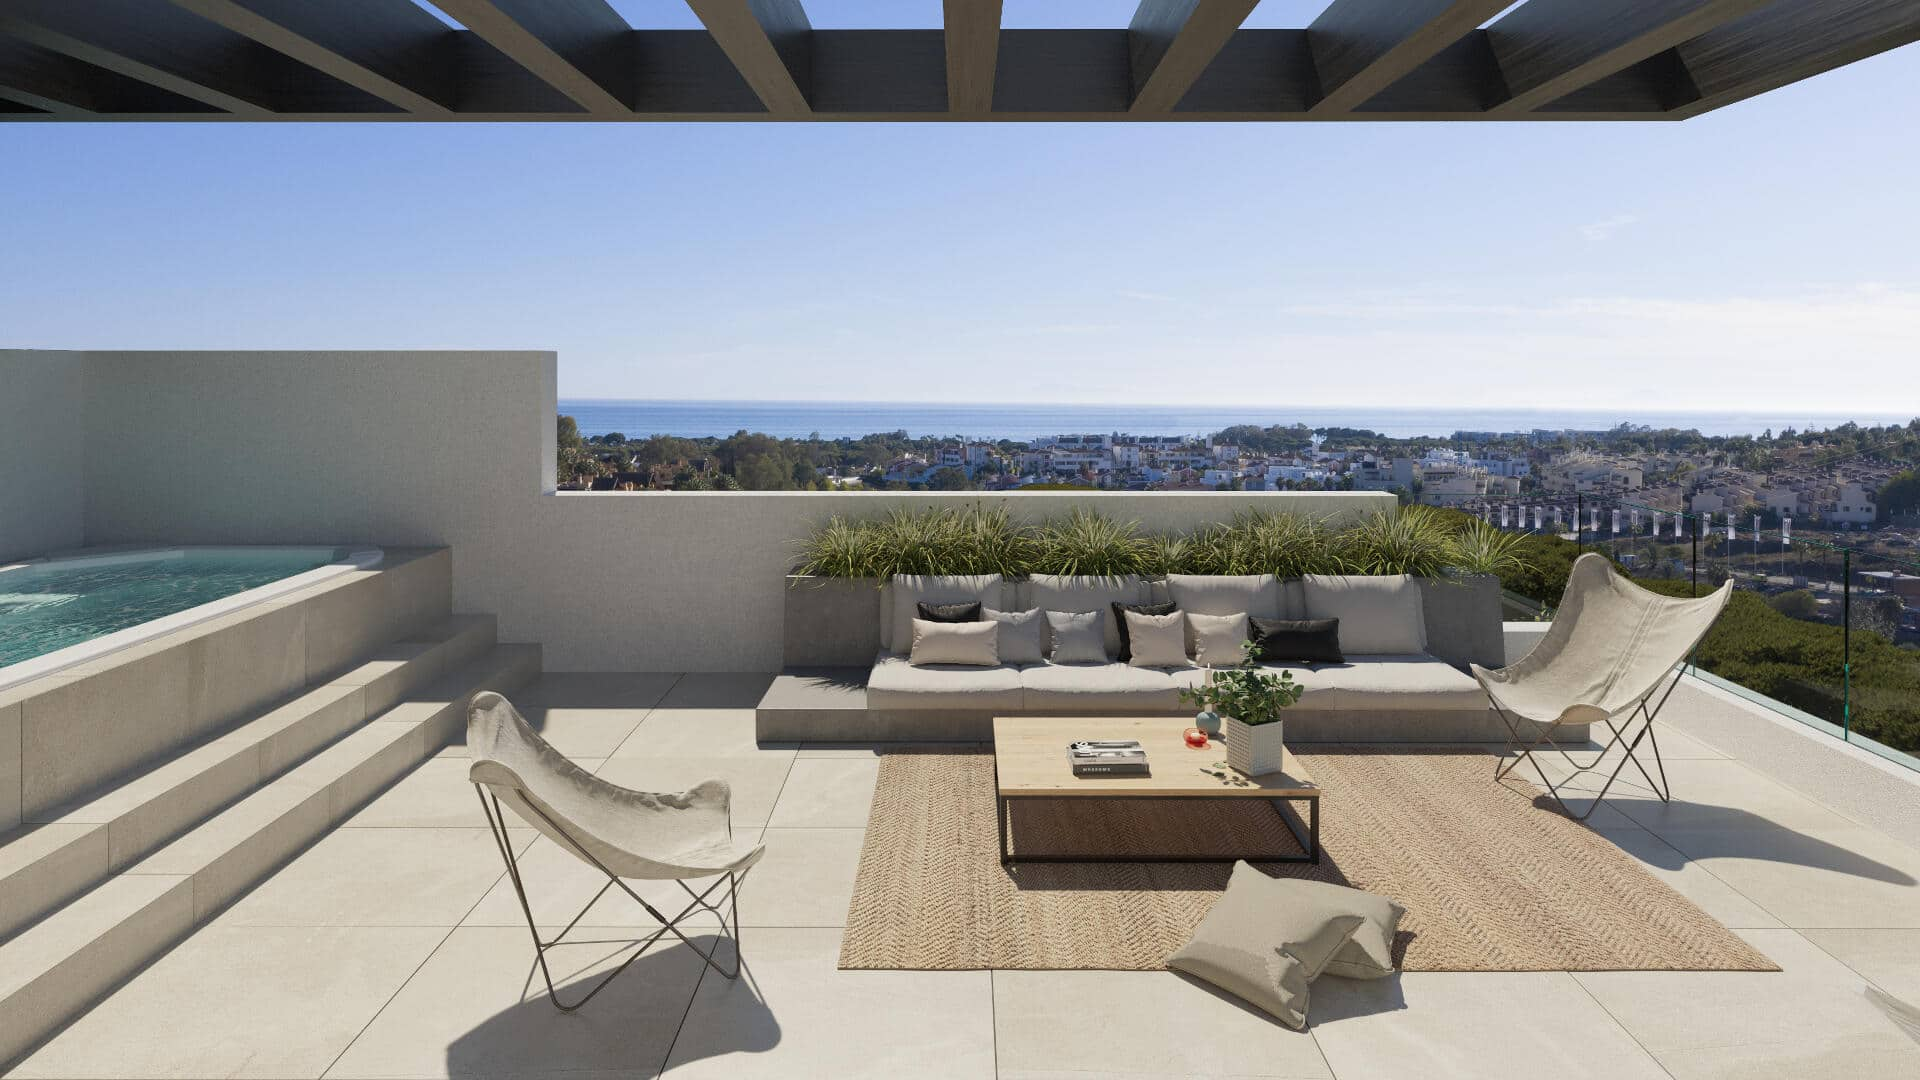 Serene Atalaya villa 3 bedrooms semi-detached with and solarium and open views towards the sea from your home